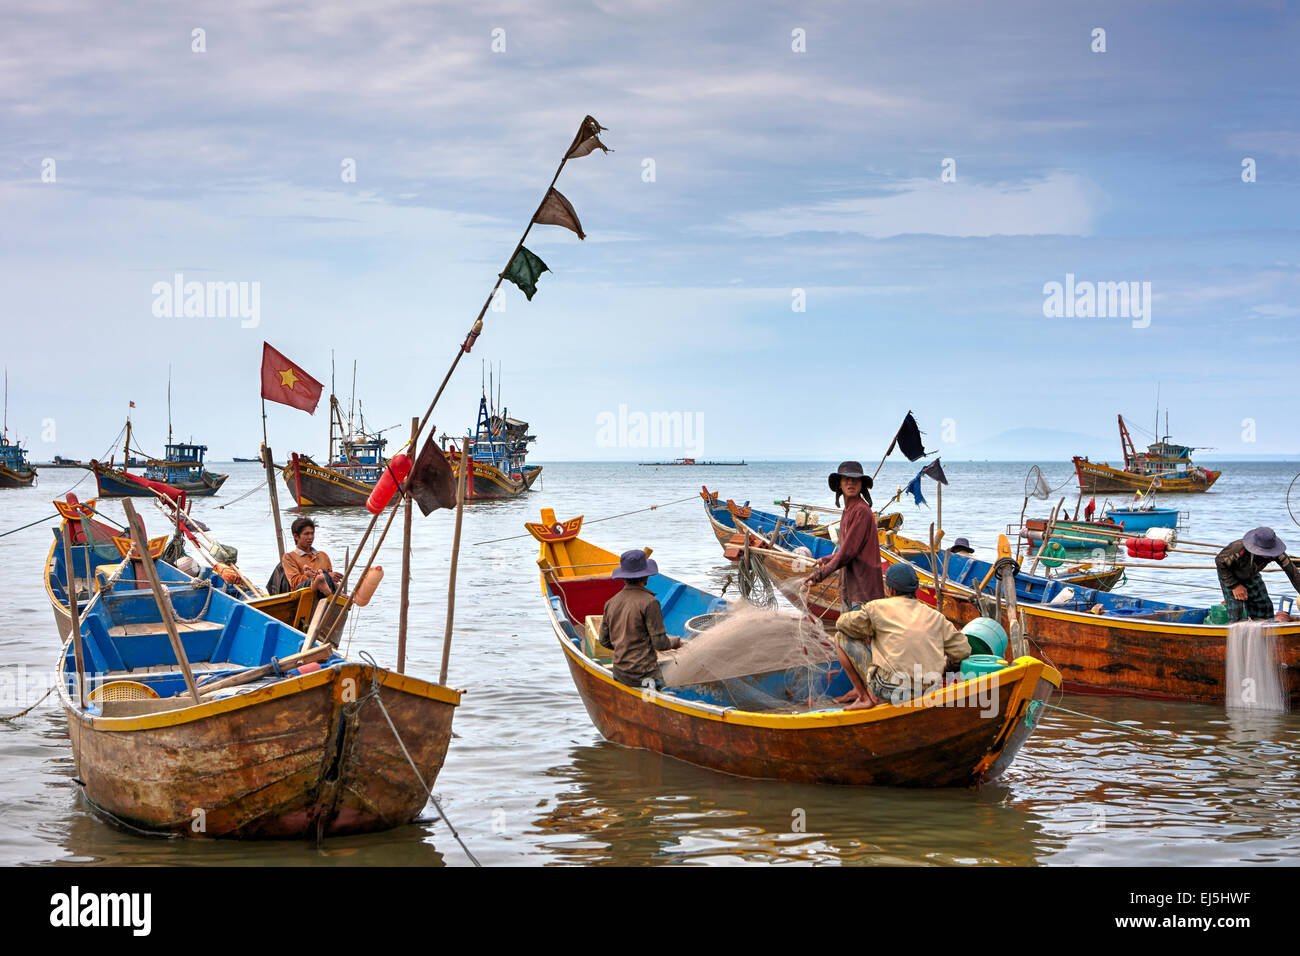 Vietnamese fishermen on traditional wooden boats at Mui Ne Fishing Harbour. Mui Ne, Binh Thuan Province, Vietnam. - Stock Image